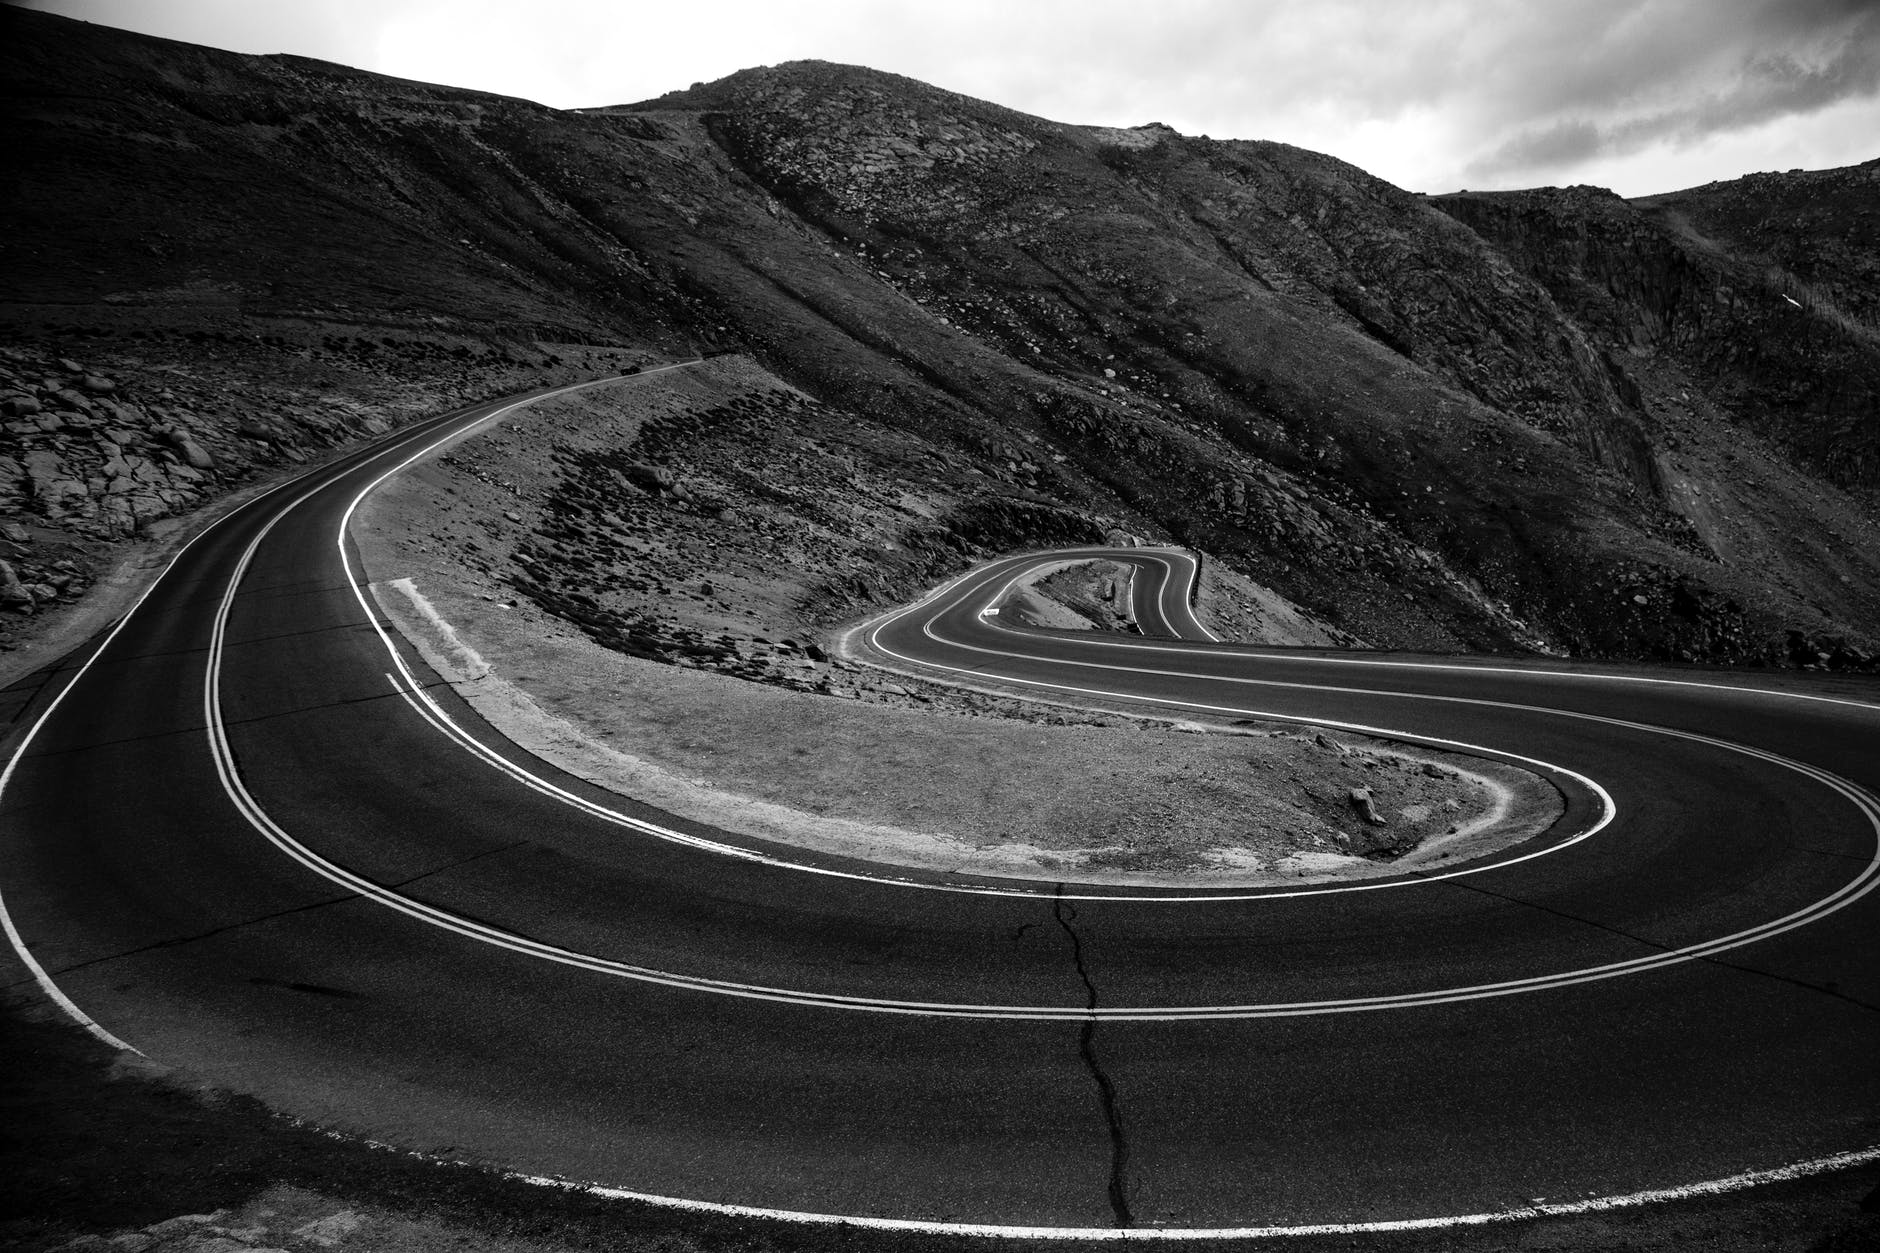 grayscale photo of a road in the middle of a mountain